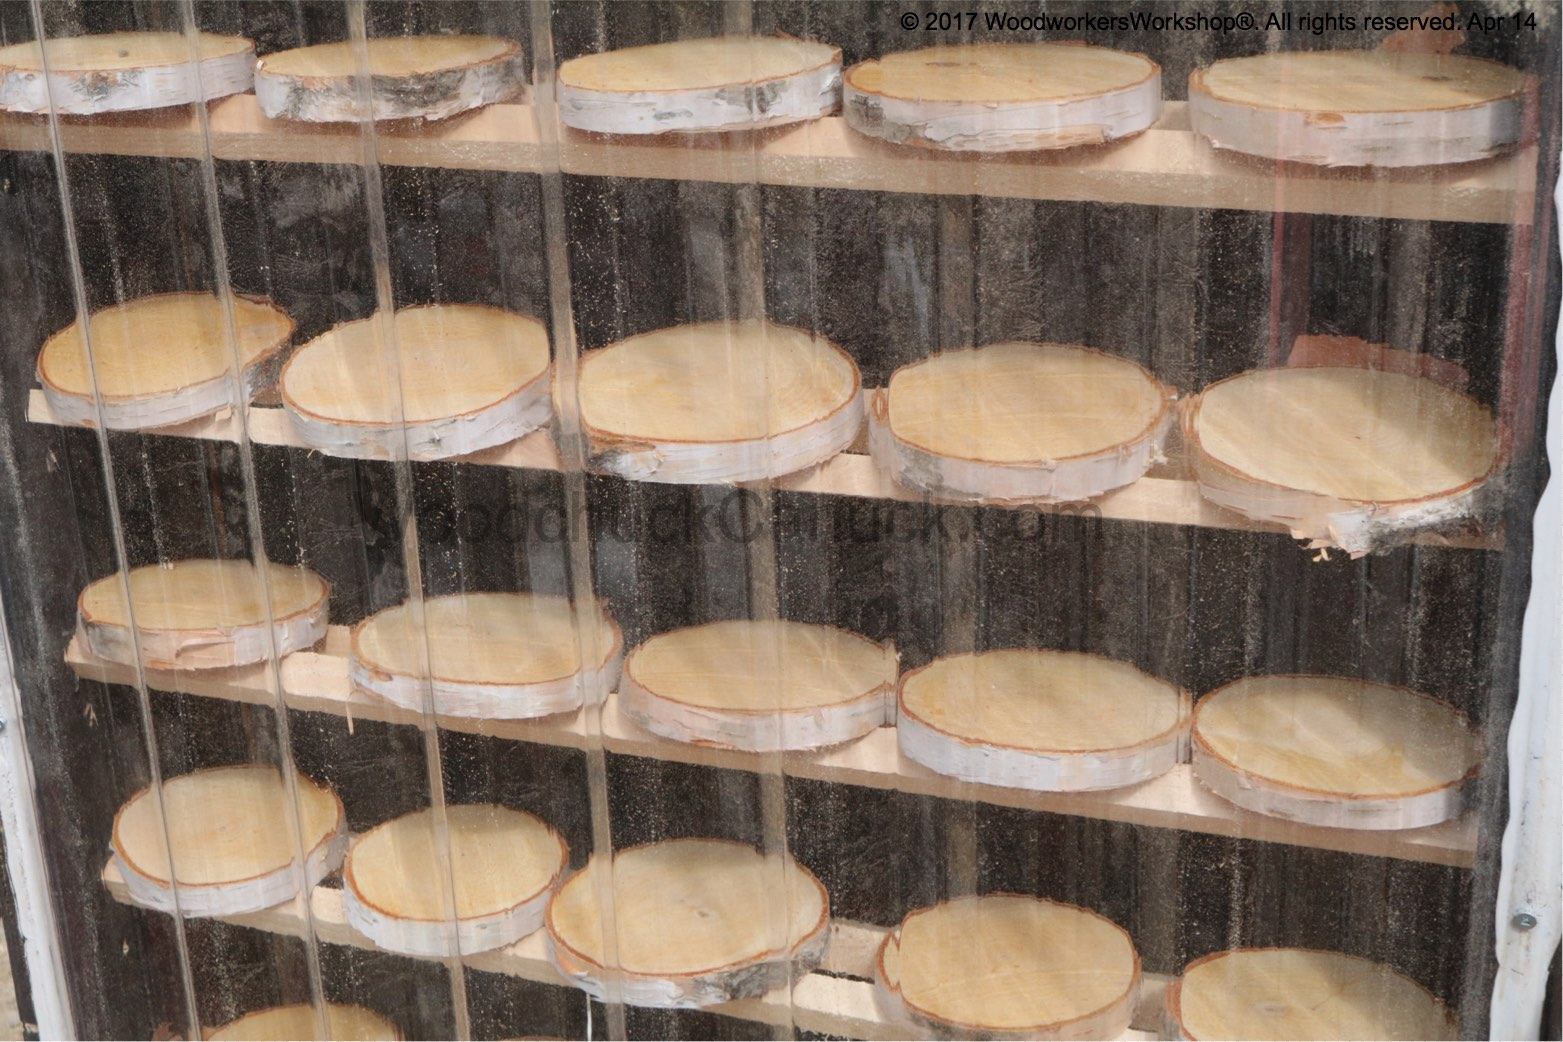 wood slices cooking